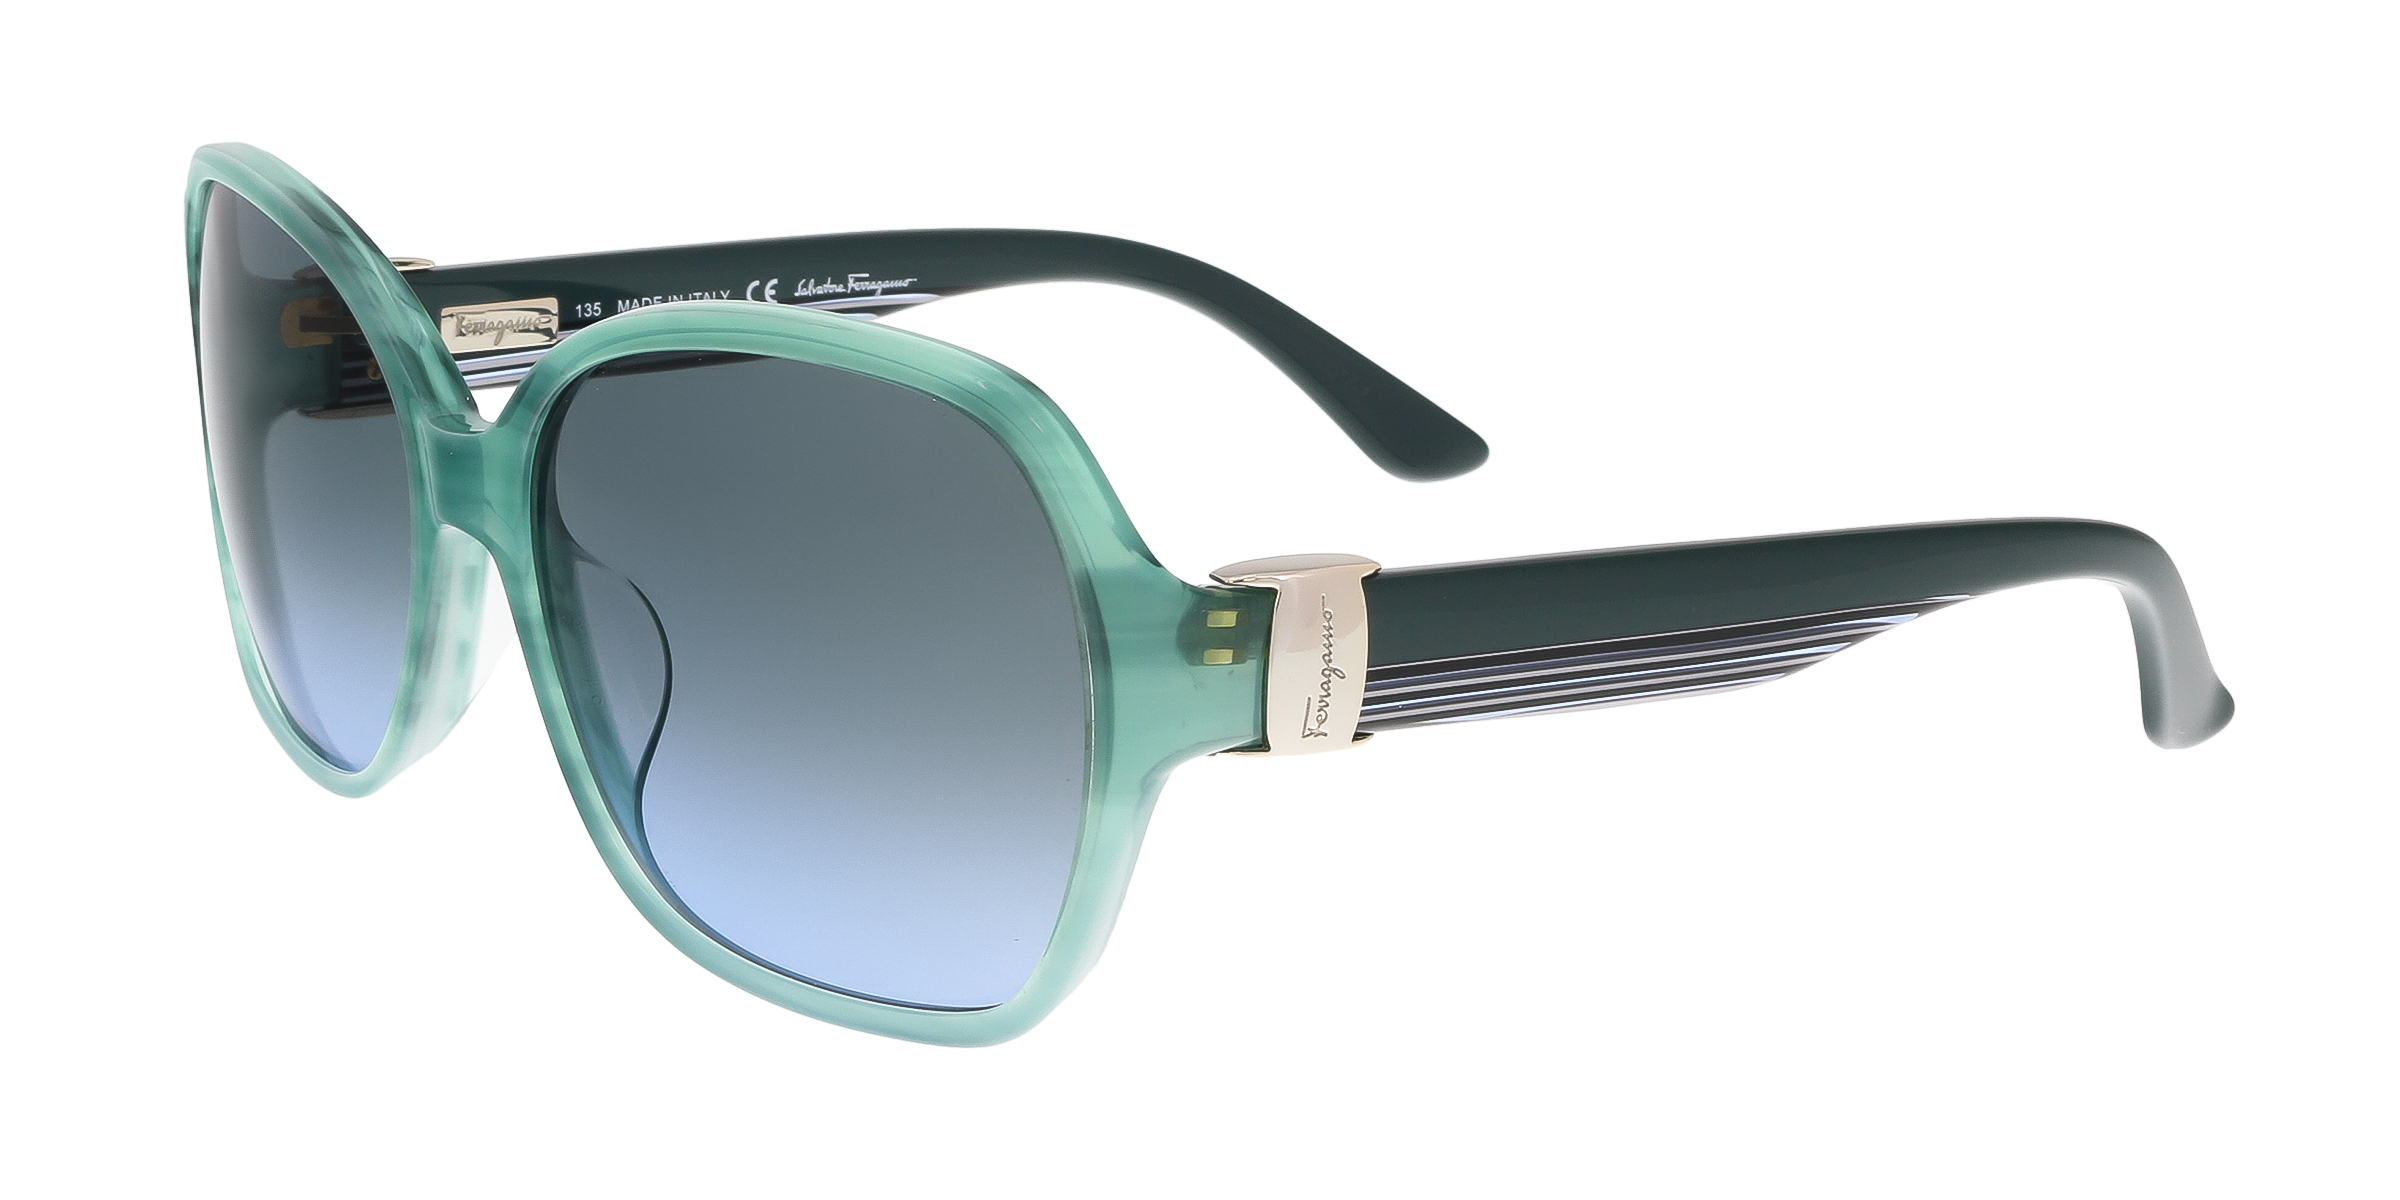 Salvatore Ferragamo SF650S 336 Sea Green Square Feline Sunglasses